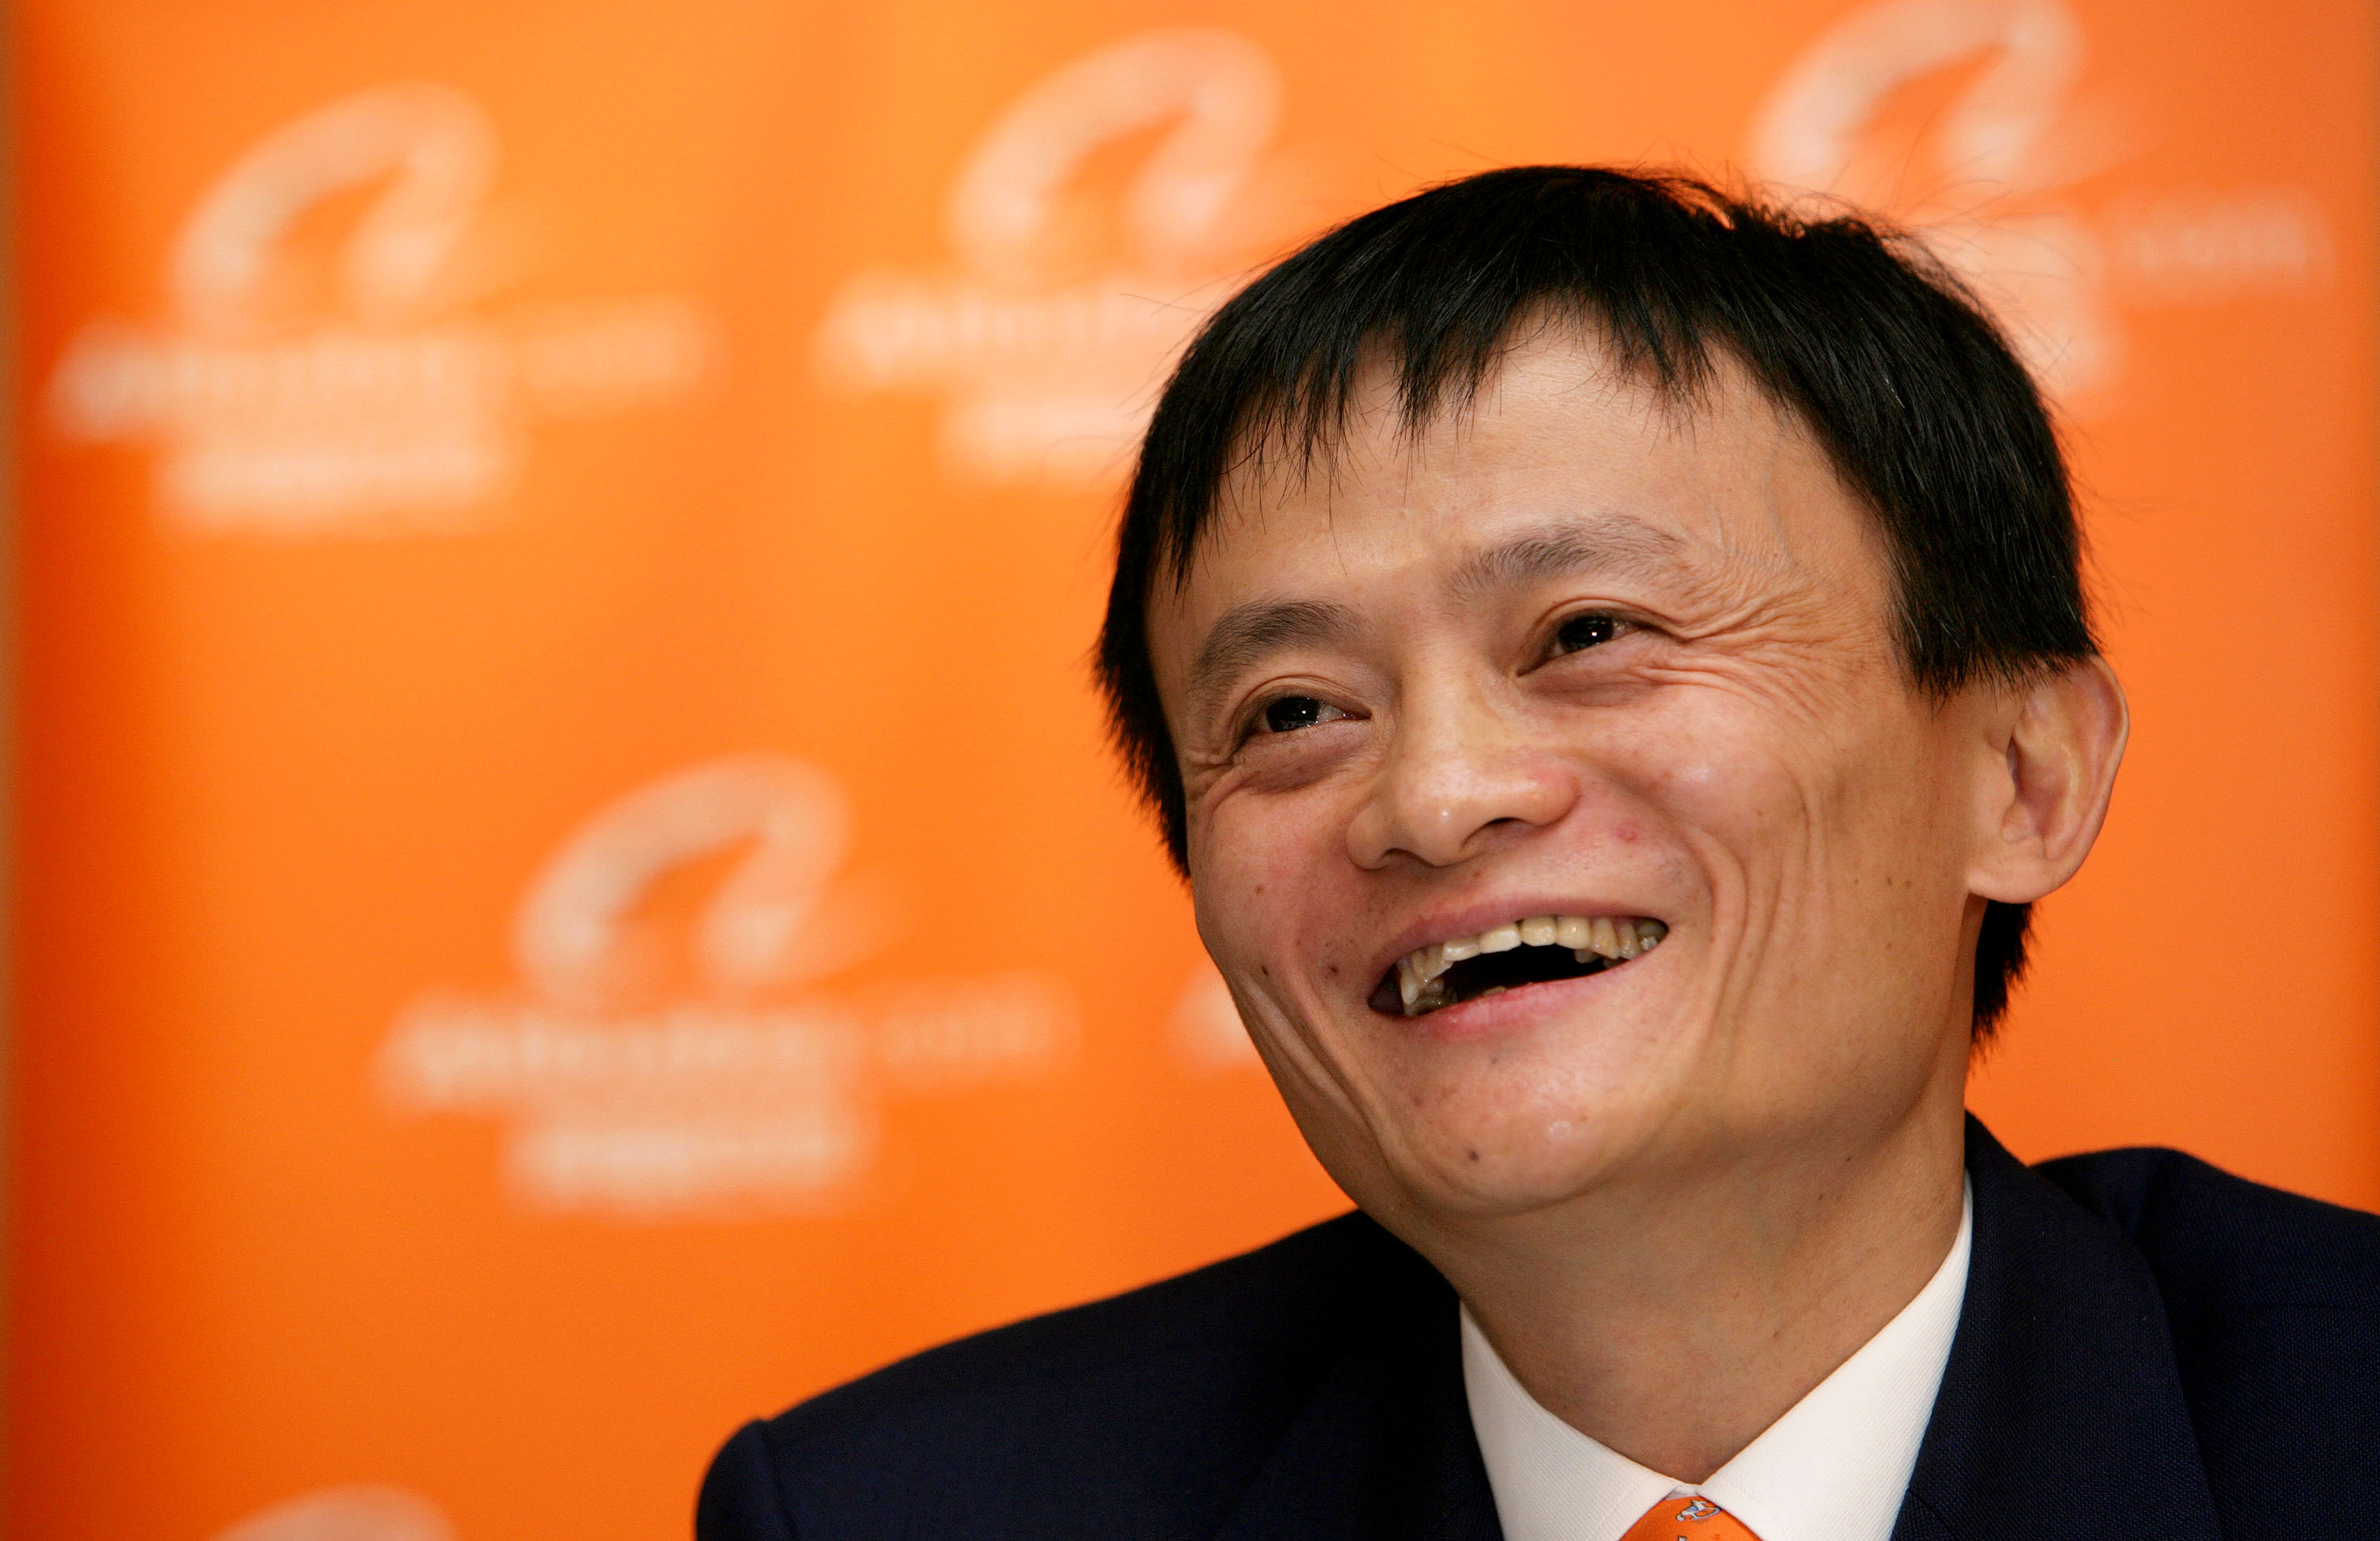 Jack Ma, chairman and then-chief executive officer of Alibaba Group Holding Ltd., laughs at a news conference in Hong Kong, China, on Tuesday, Nov. 6, 2007.